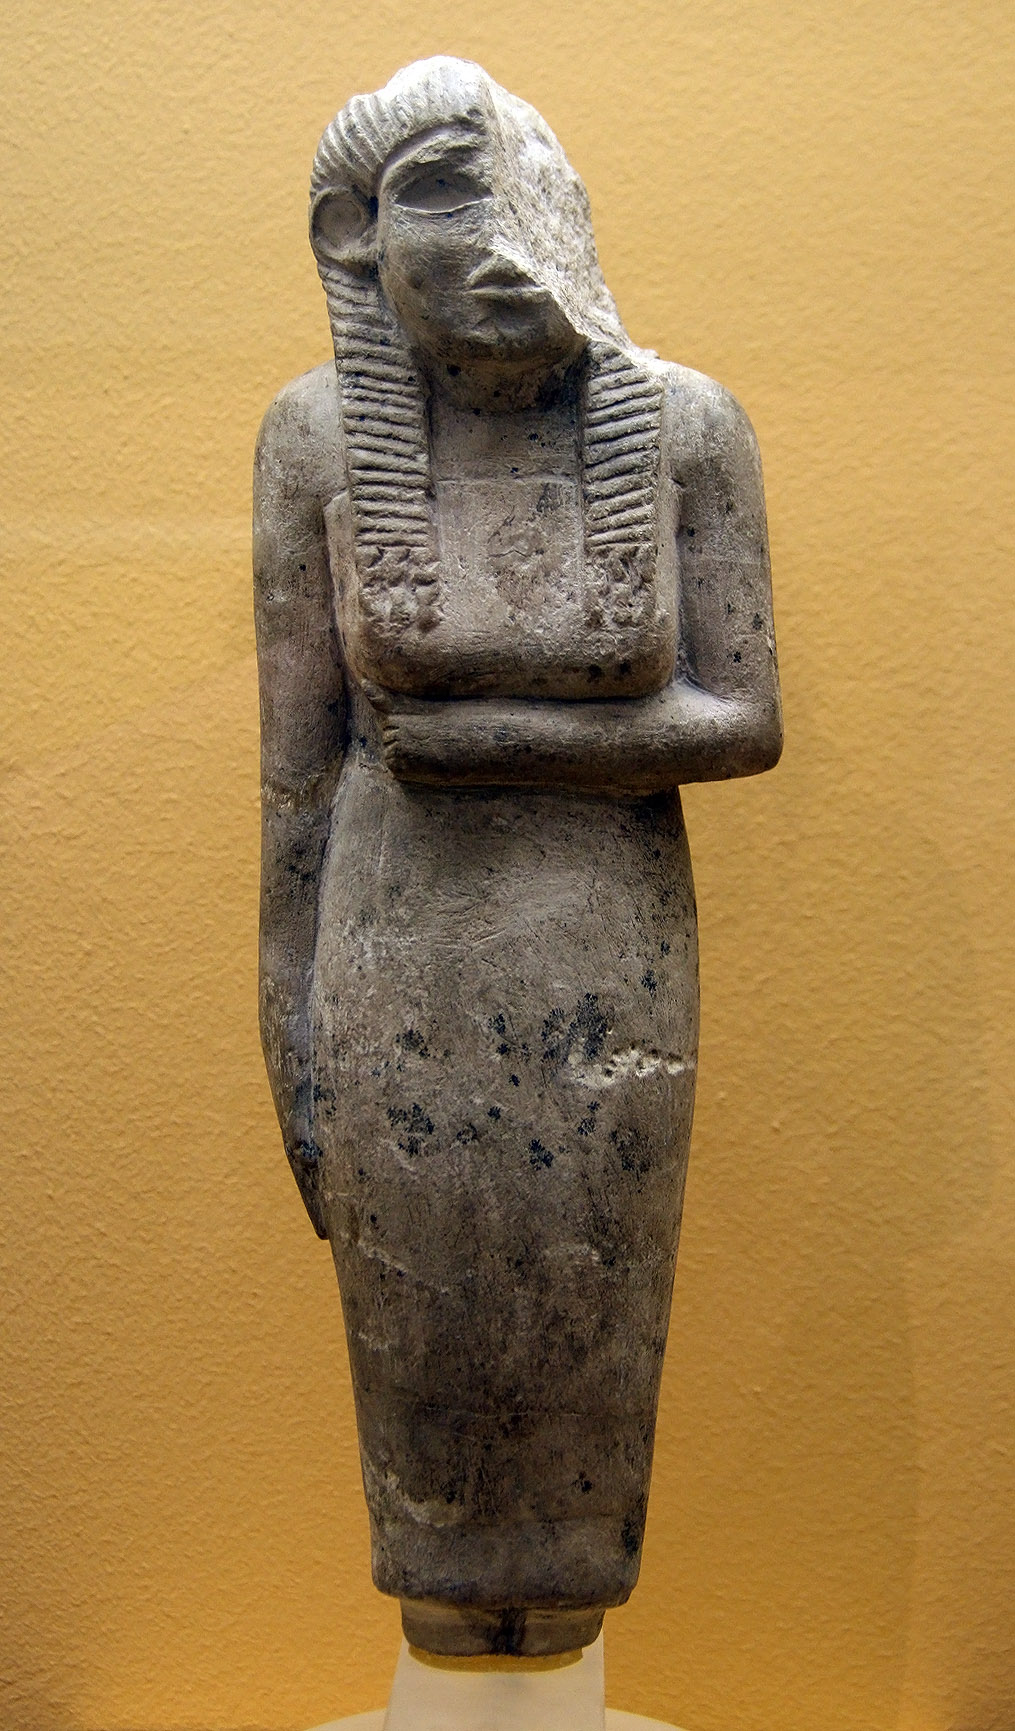 statuette of queen ankhnes meryre ii and her son pepyii essay Meryre ii meryre in hieroglyphs the ancient egyptian noble known as meryre ii was superintendent of the queen nefertiti son of re (smenkhare- dejeser-kheperu.